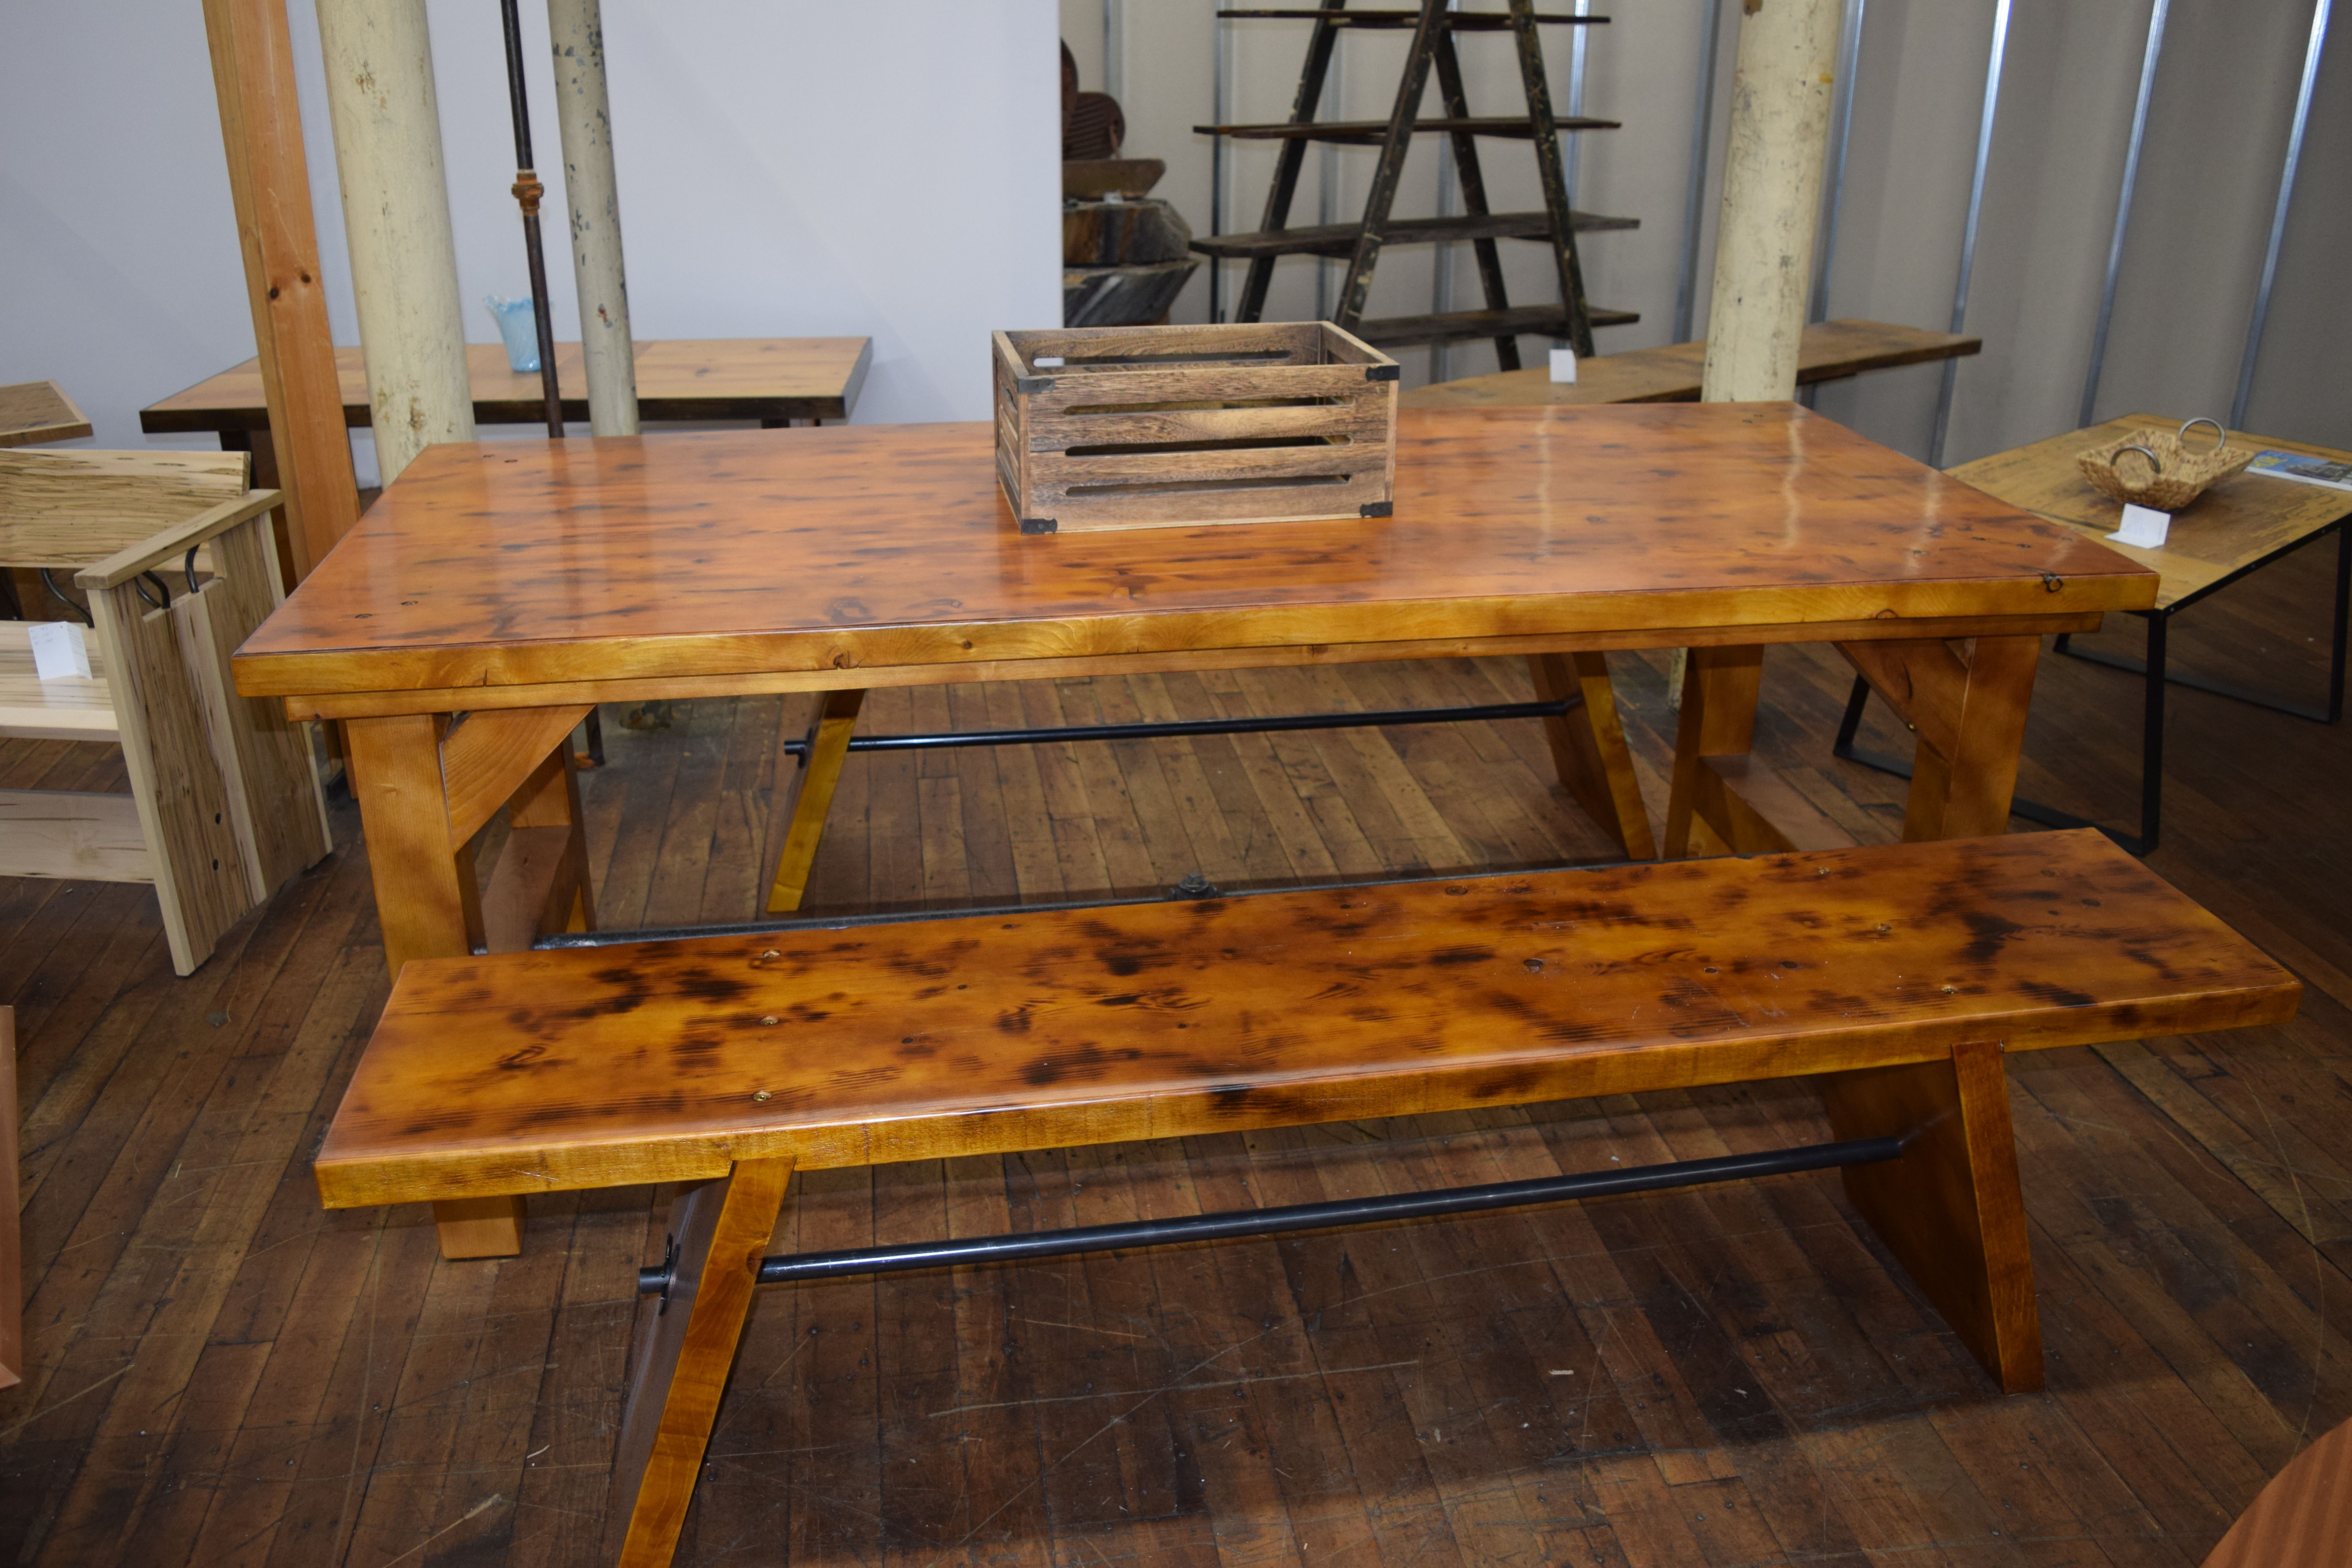 Farm Bench Scorched Wood W Orange Shellac Varnish Dining Room Table